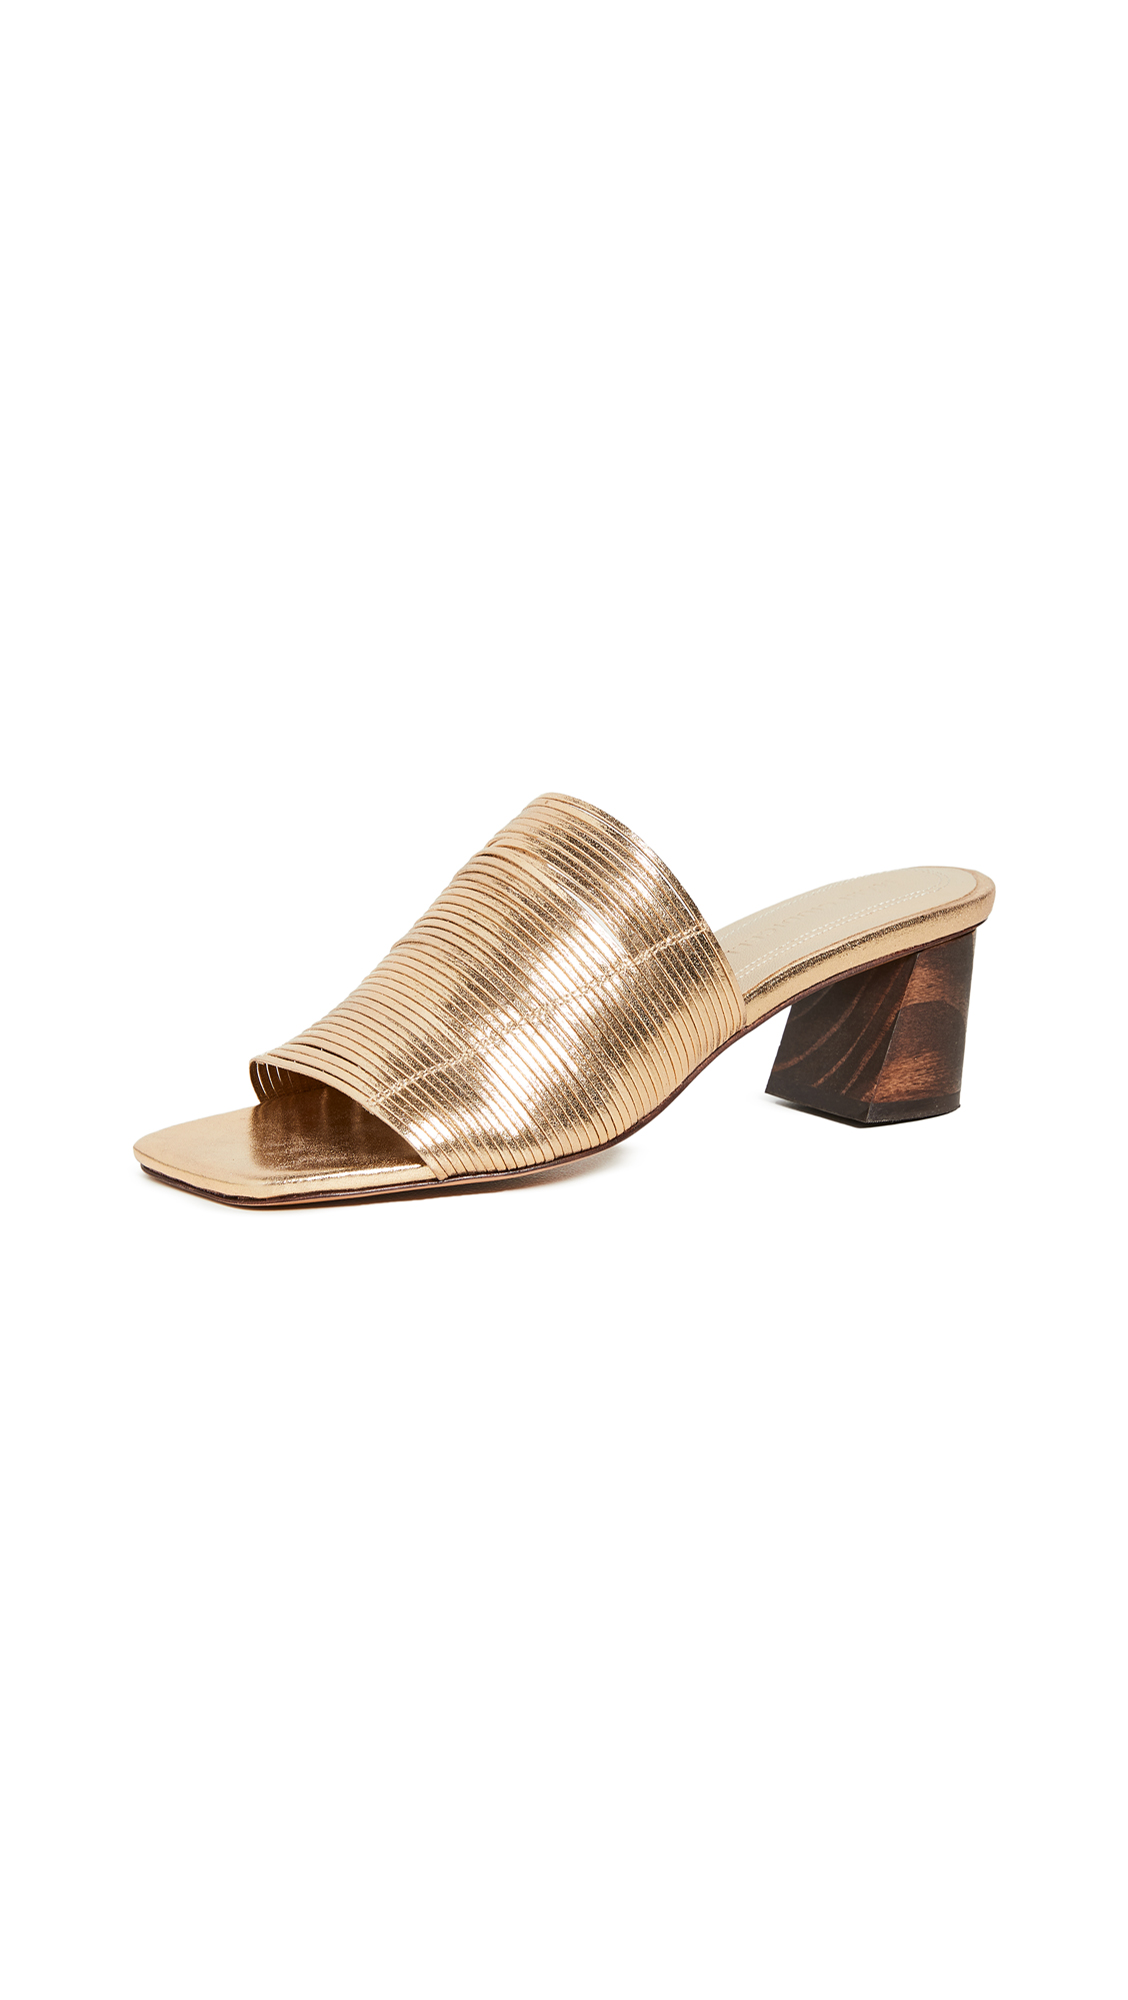 Mari Giudicelli Giselle Sandals – 40% Off Sale